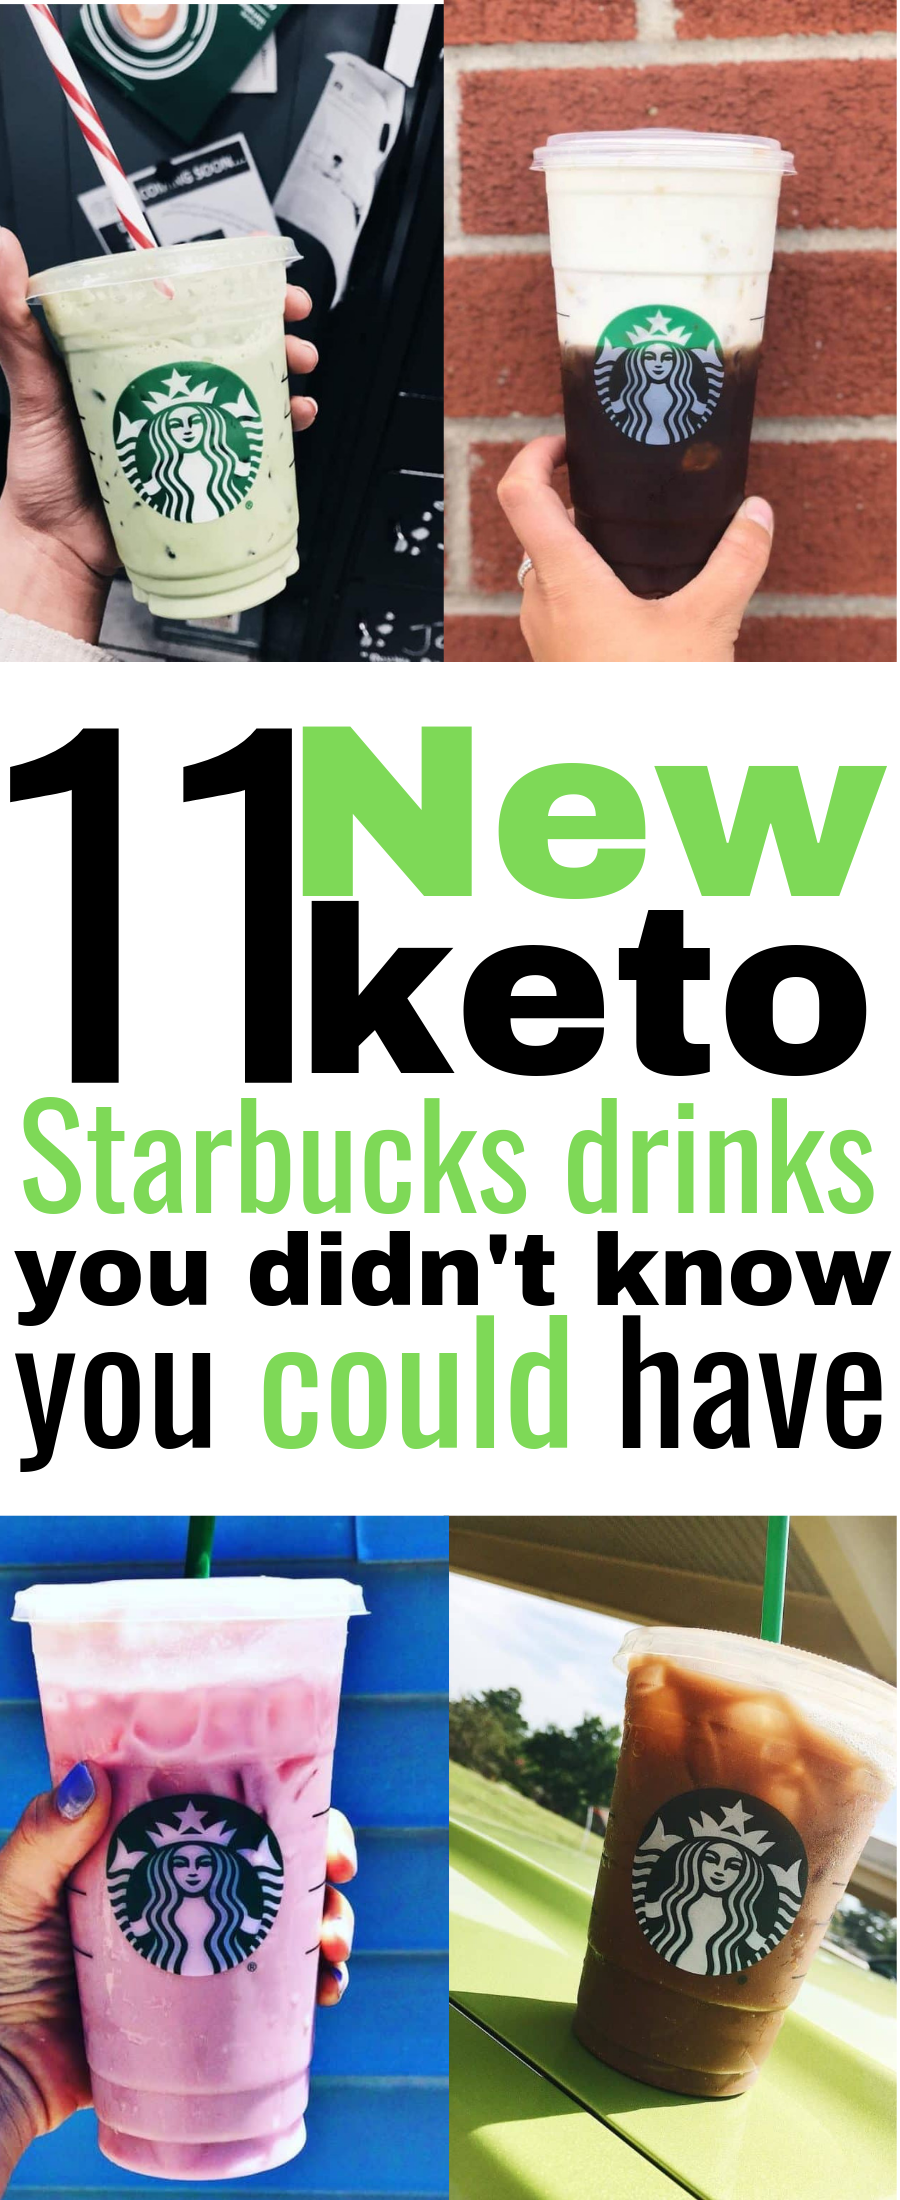 11 NEW keto Starbucks drinks you didn't know you could have! These keto Starbucks drinks are THE BEST! Plus they're perfect for keeping me burning fat on the low carb diet and keeping me in ketosis. I'm so glad I found these keto Starbucks fat burning drinks. Now I can truly enjoy myself guilt-free when I choose to go to Starbucks! definitely pinning this for later #keto #ketodiet #ketogenic #lchf #healthylivinginspiration #ketostarbucksdrinks